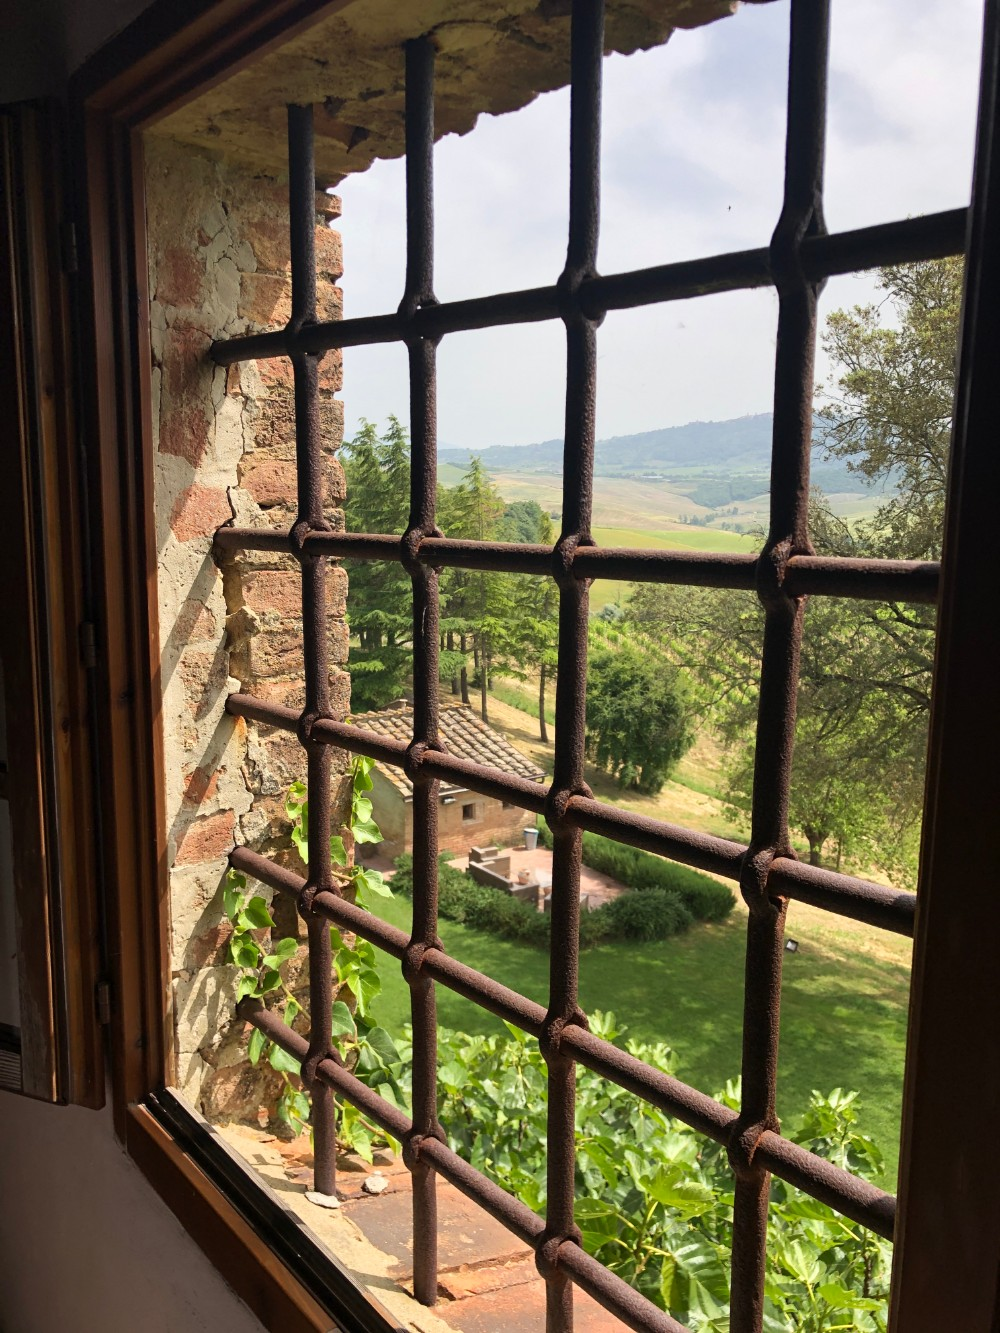 Medieval steel bar window overlooking the vineyards at castello tricerchi